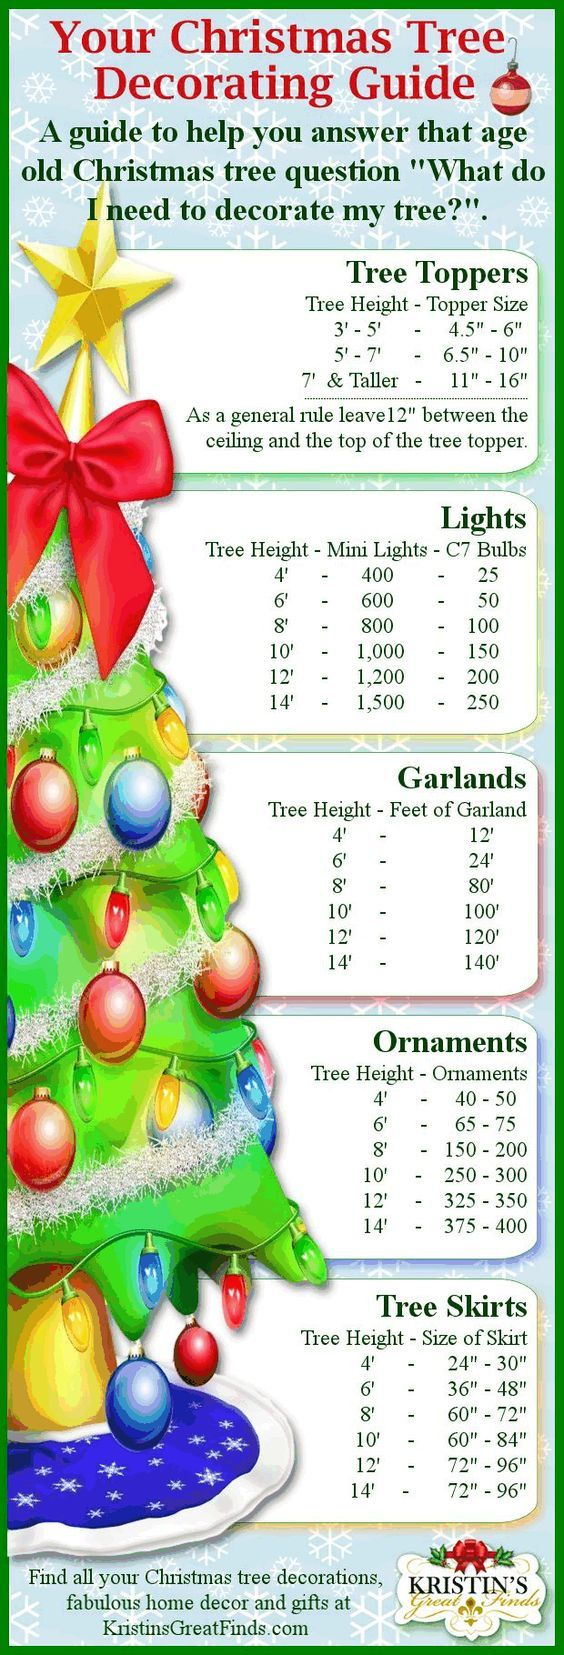 do you know how many lights are needed for your 7 foot tall christmas tree what size tree skirt is recommended for a christmas tree that is 8 feet tall - How Many Feet Of Christmas Lights For 7 Foot Tree